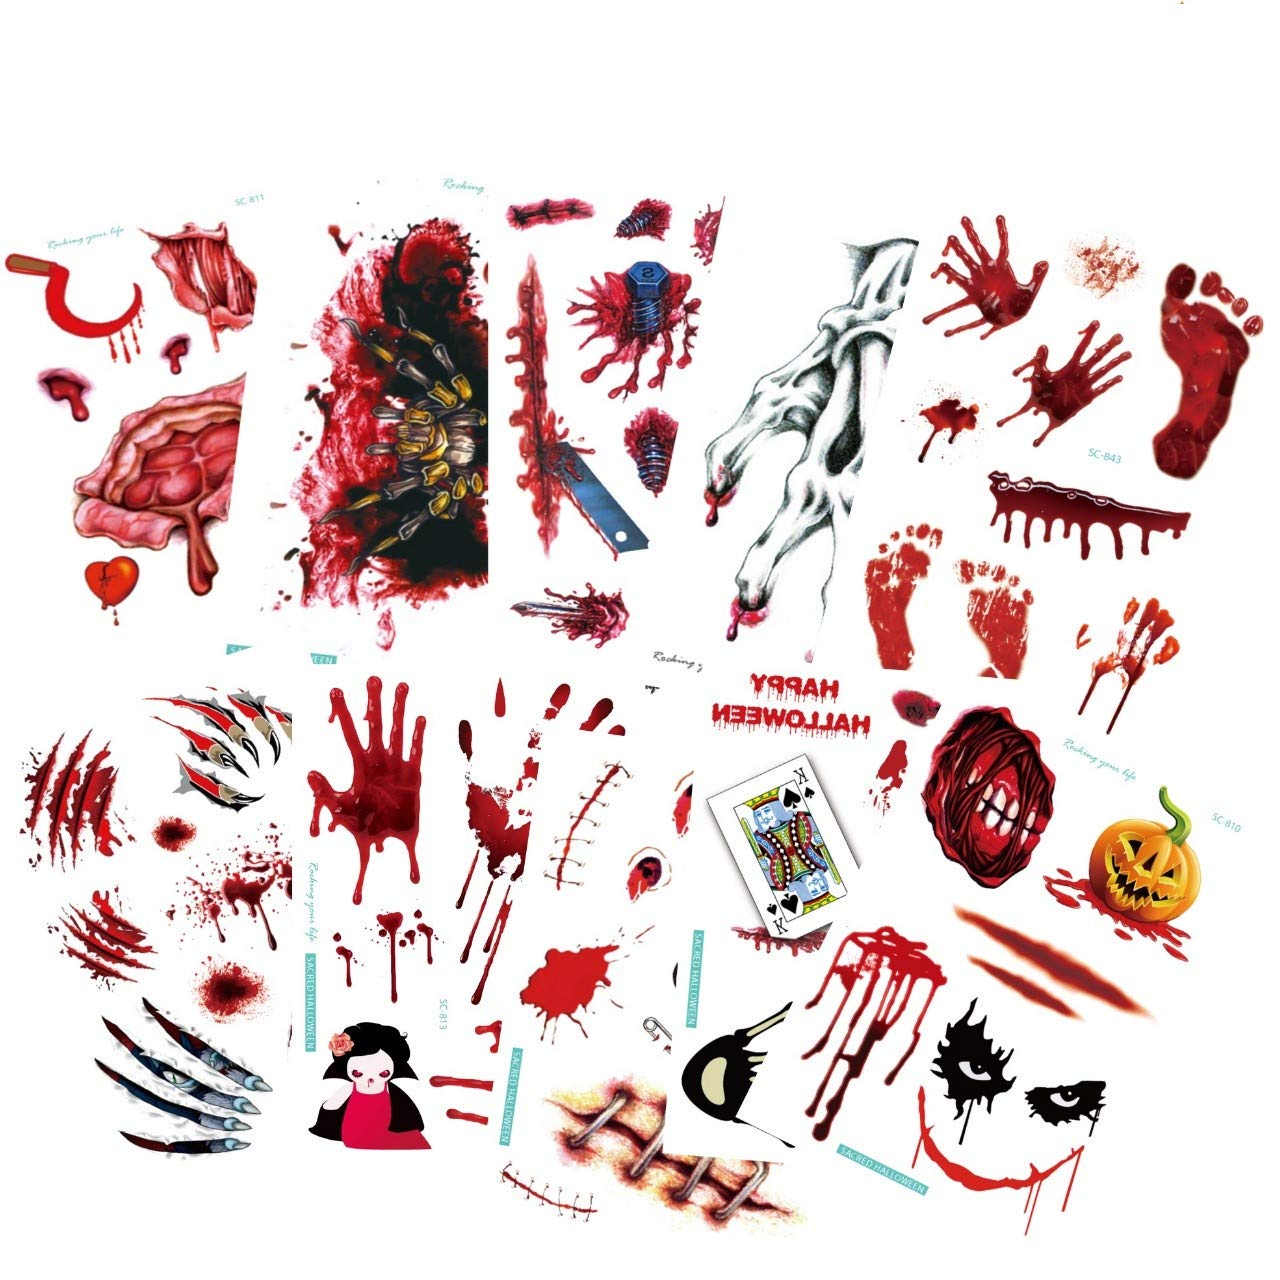 60pcs makeup scar wound tattoos stickers, Realistic Temporary Tattoos Stickers with Blood Stains Gunshot Wounds Design for Cosplay makeup Party Total 10 sheets .